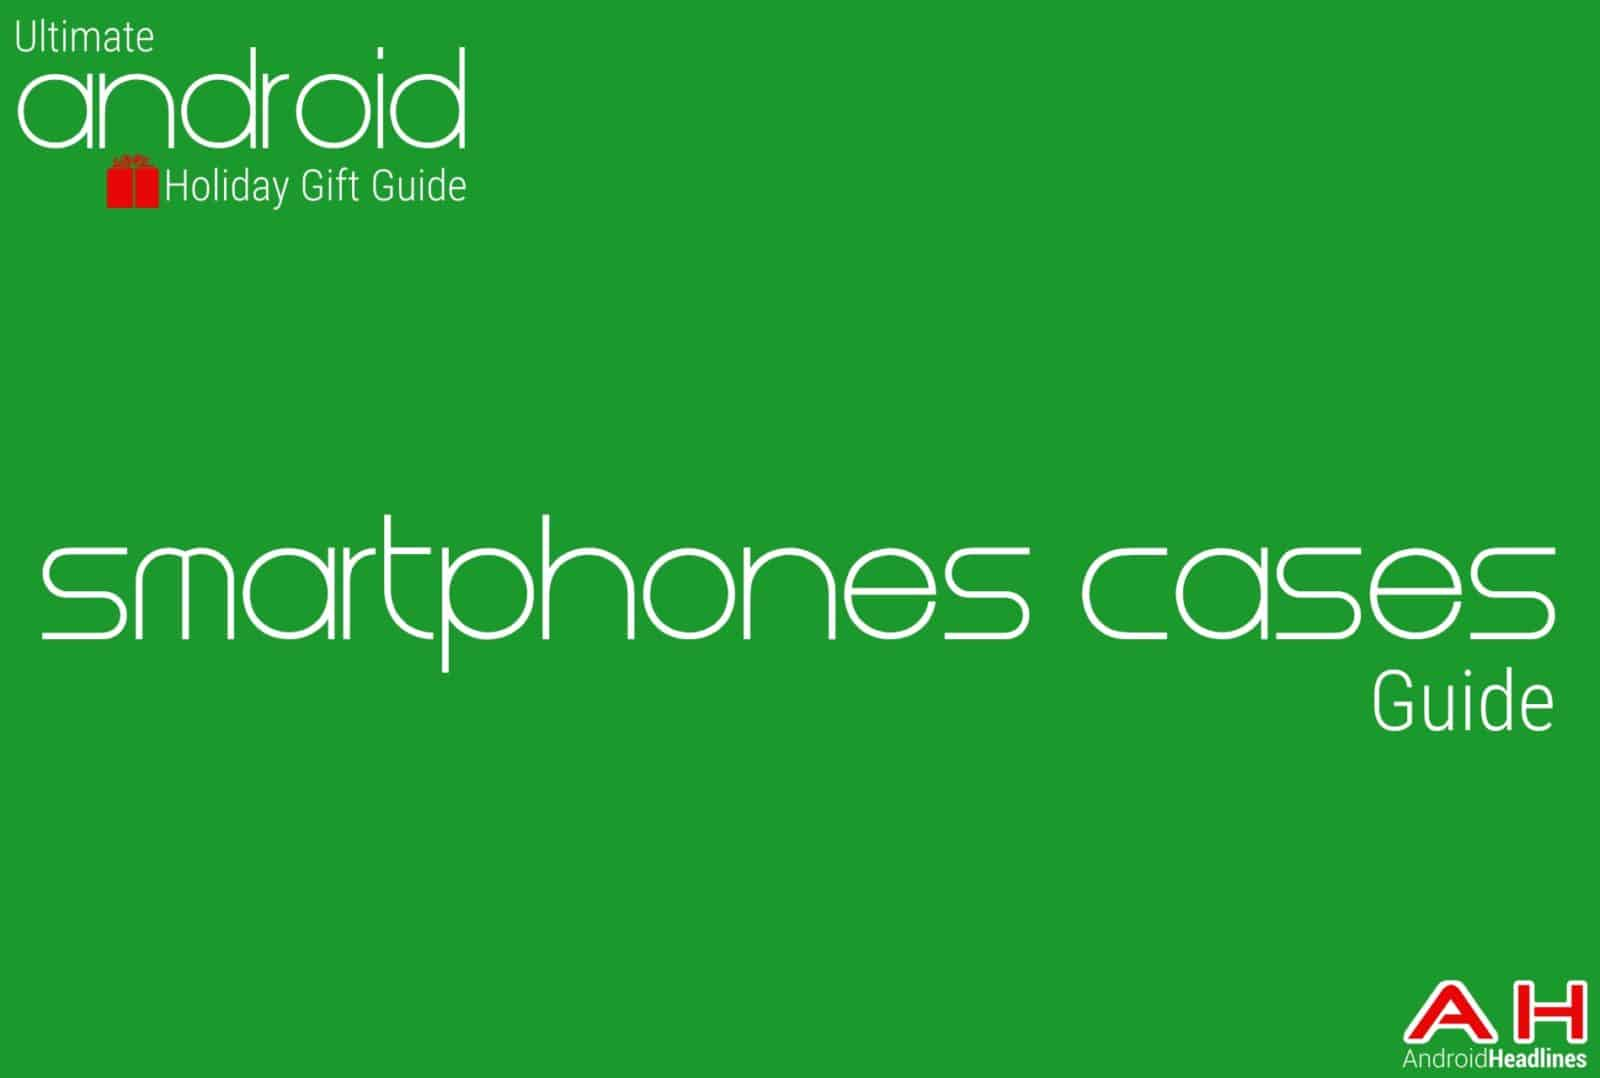 Best Android Smartphones Cases Guide - Android Holiday Gift Guide Top 10